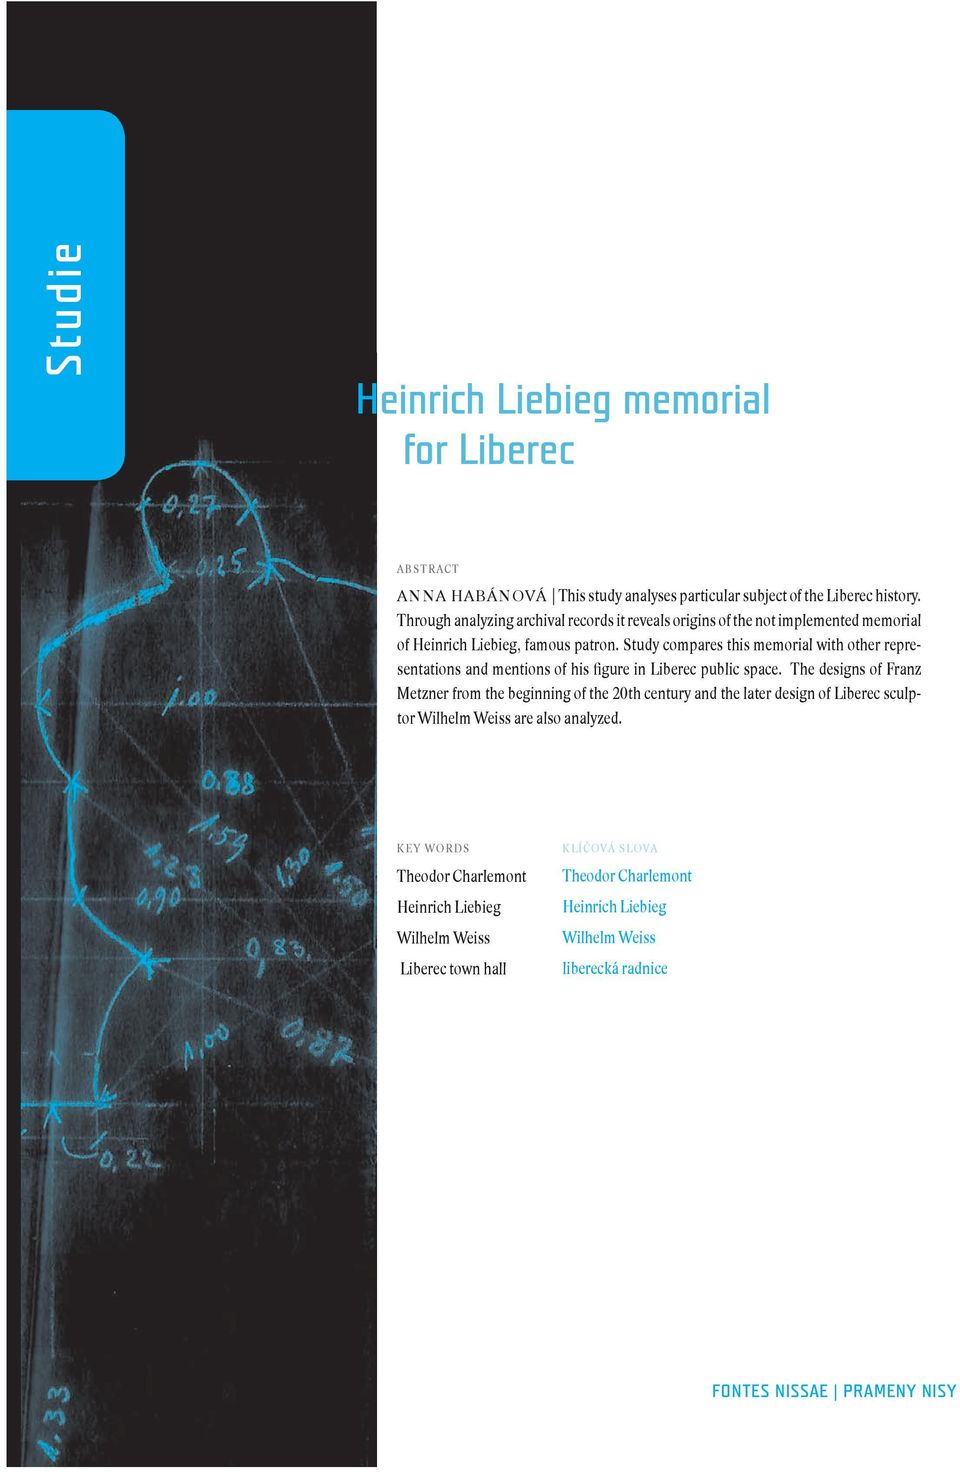 Study compares this memorial with other representations and mentions of his fi gure in Liberec public space.